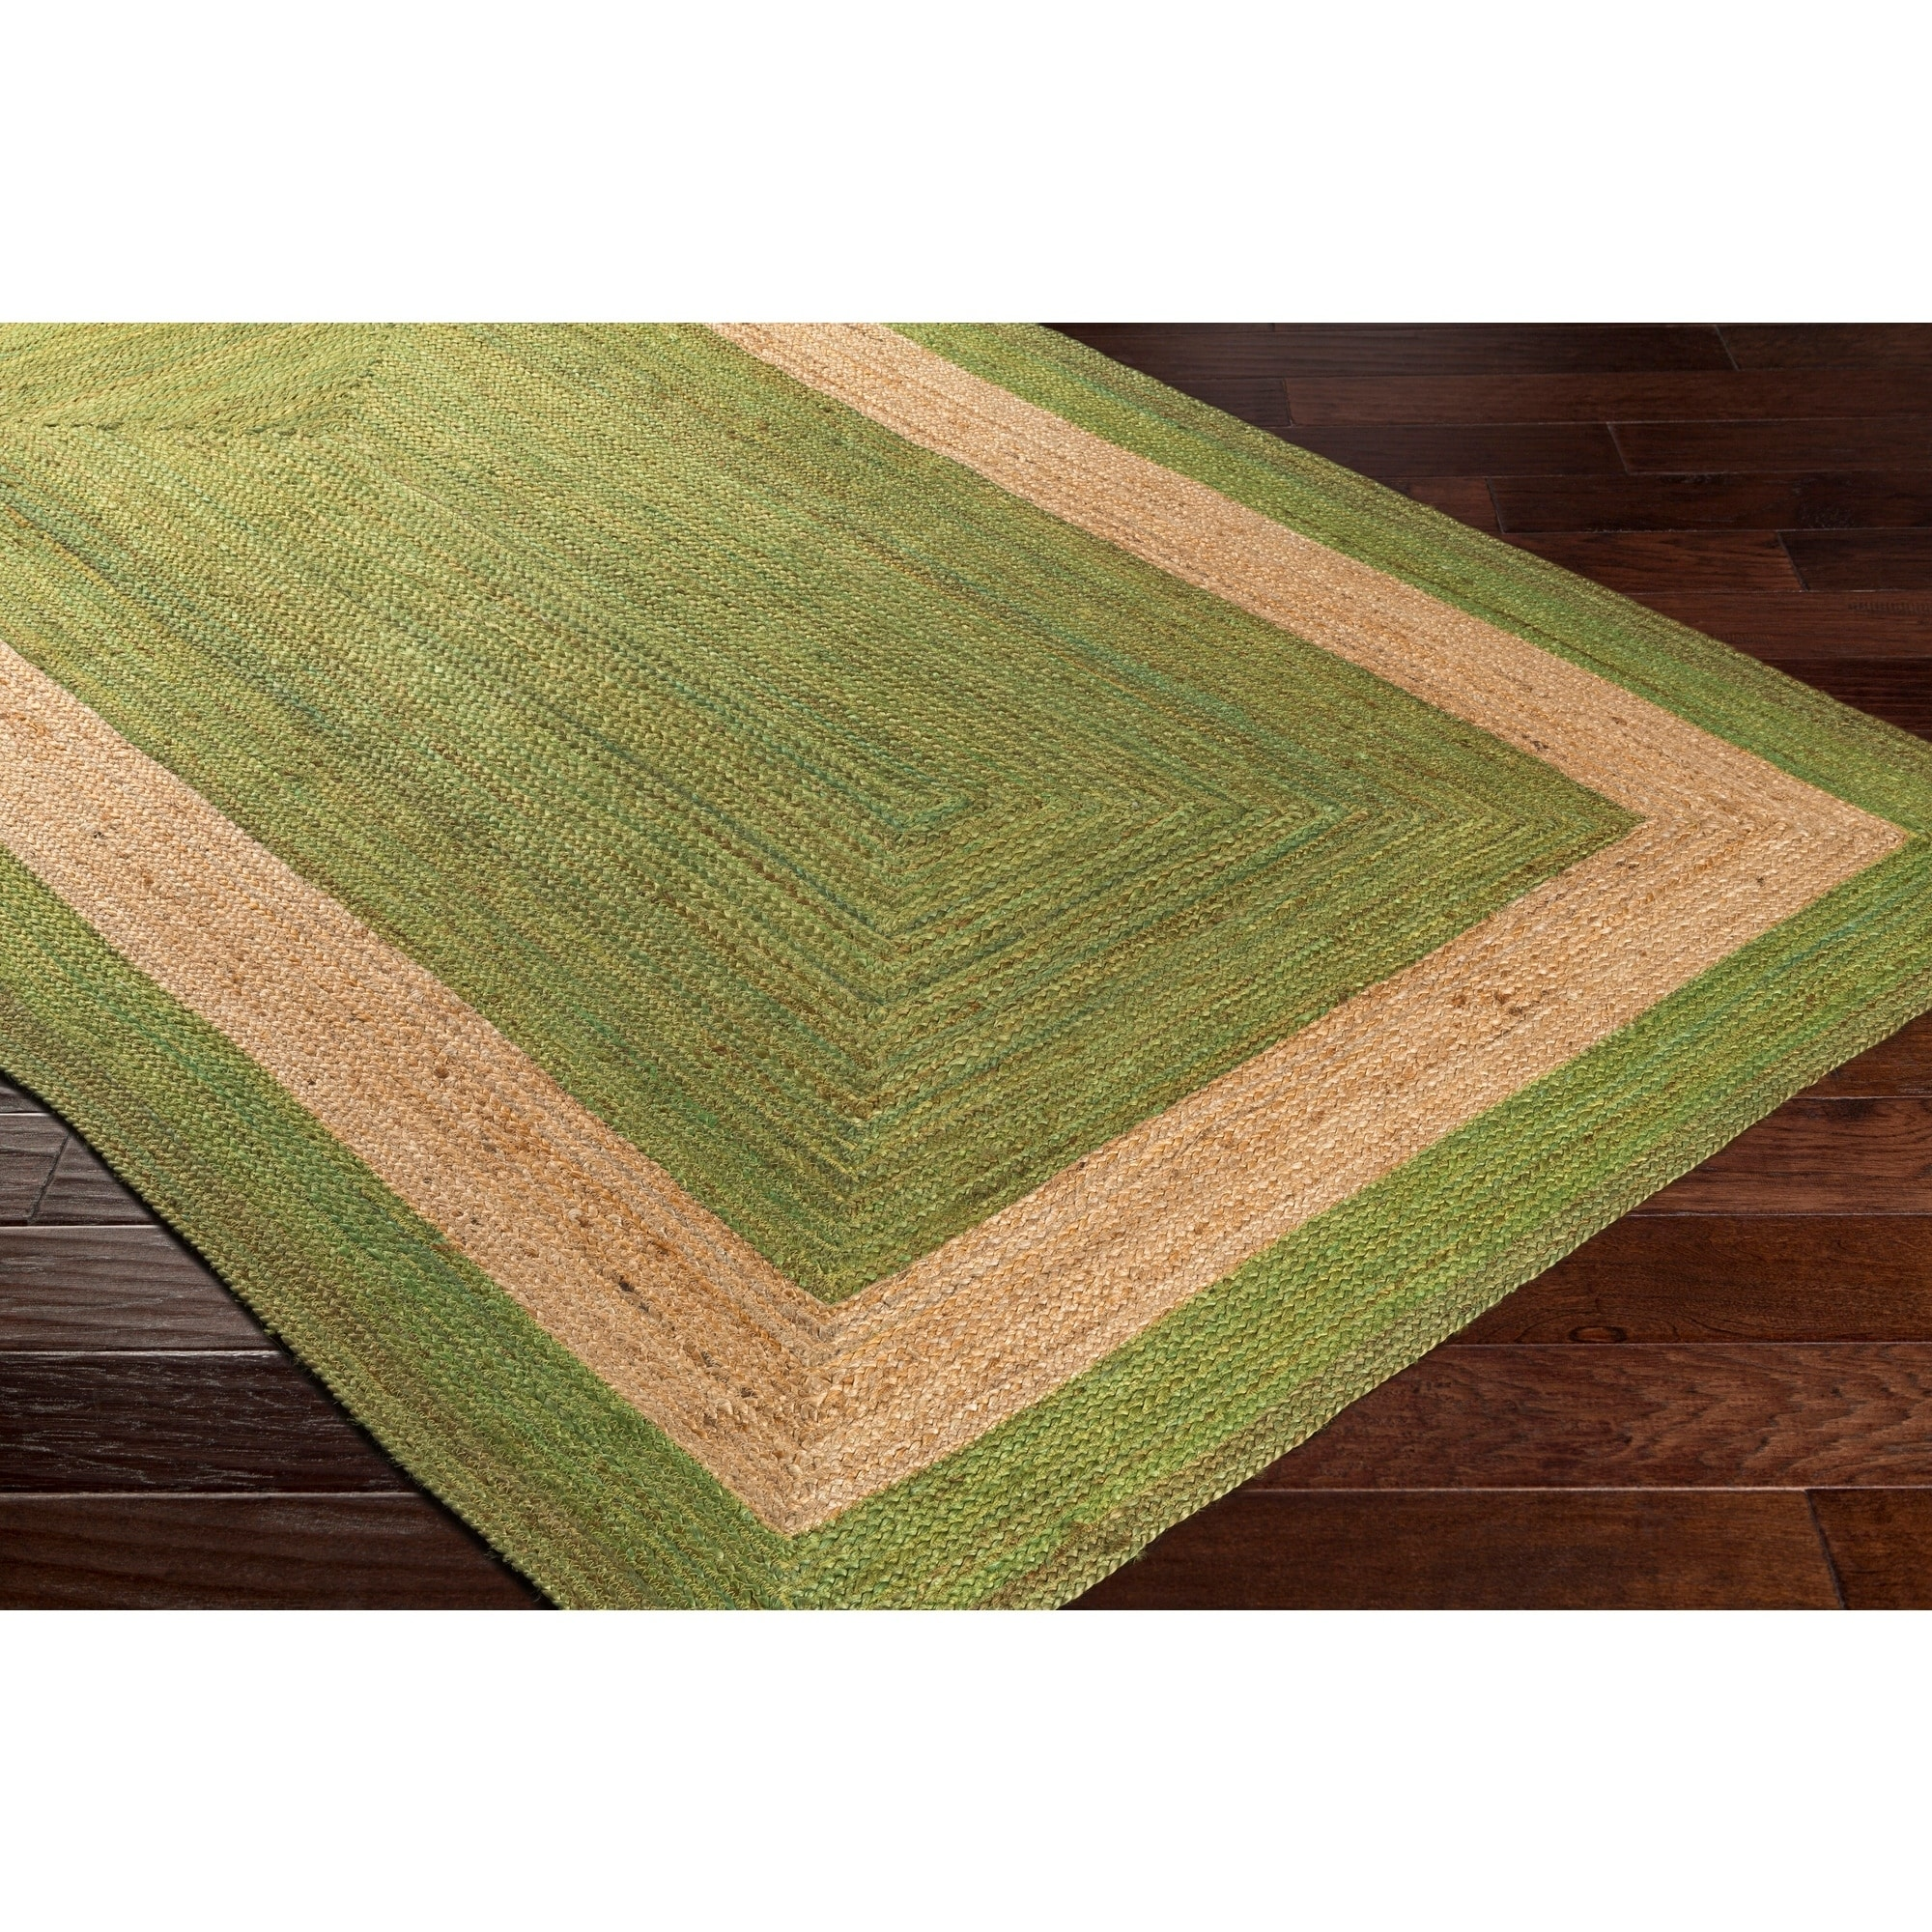 Hand Woven Canada Jute Area Rug On Free Shipping Orders Over 45 Com 11118461